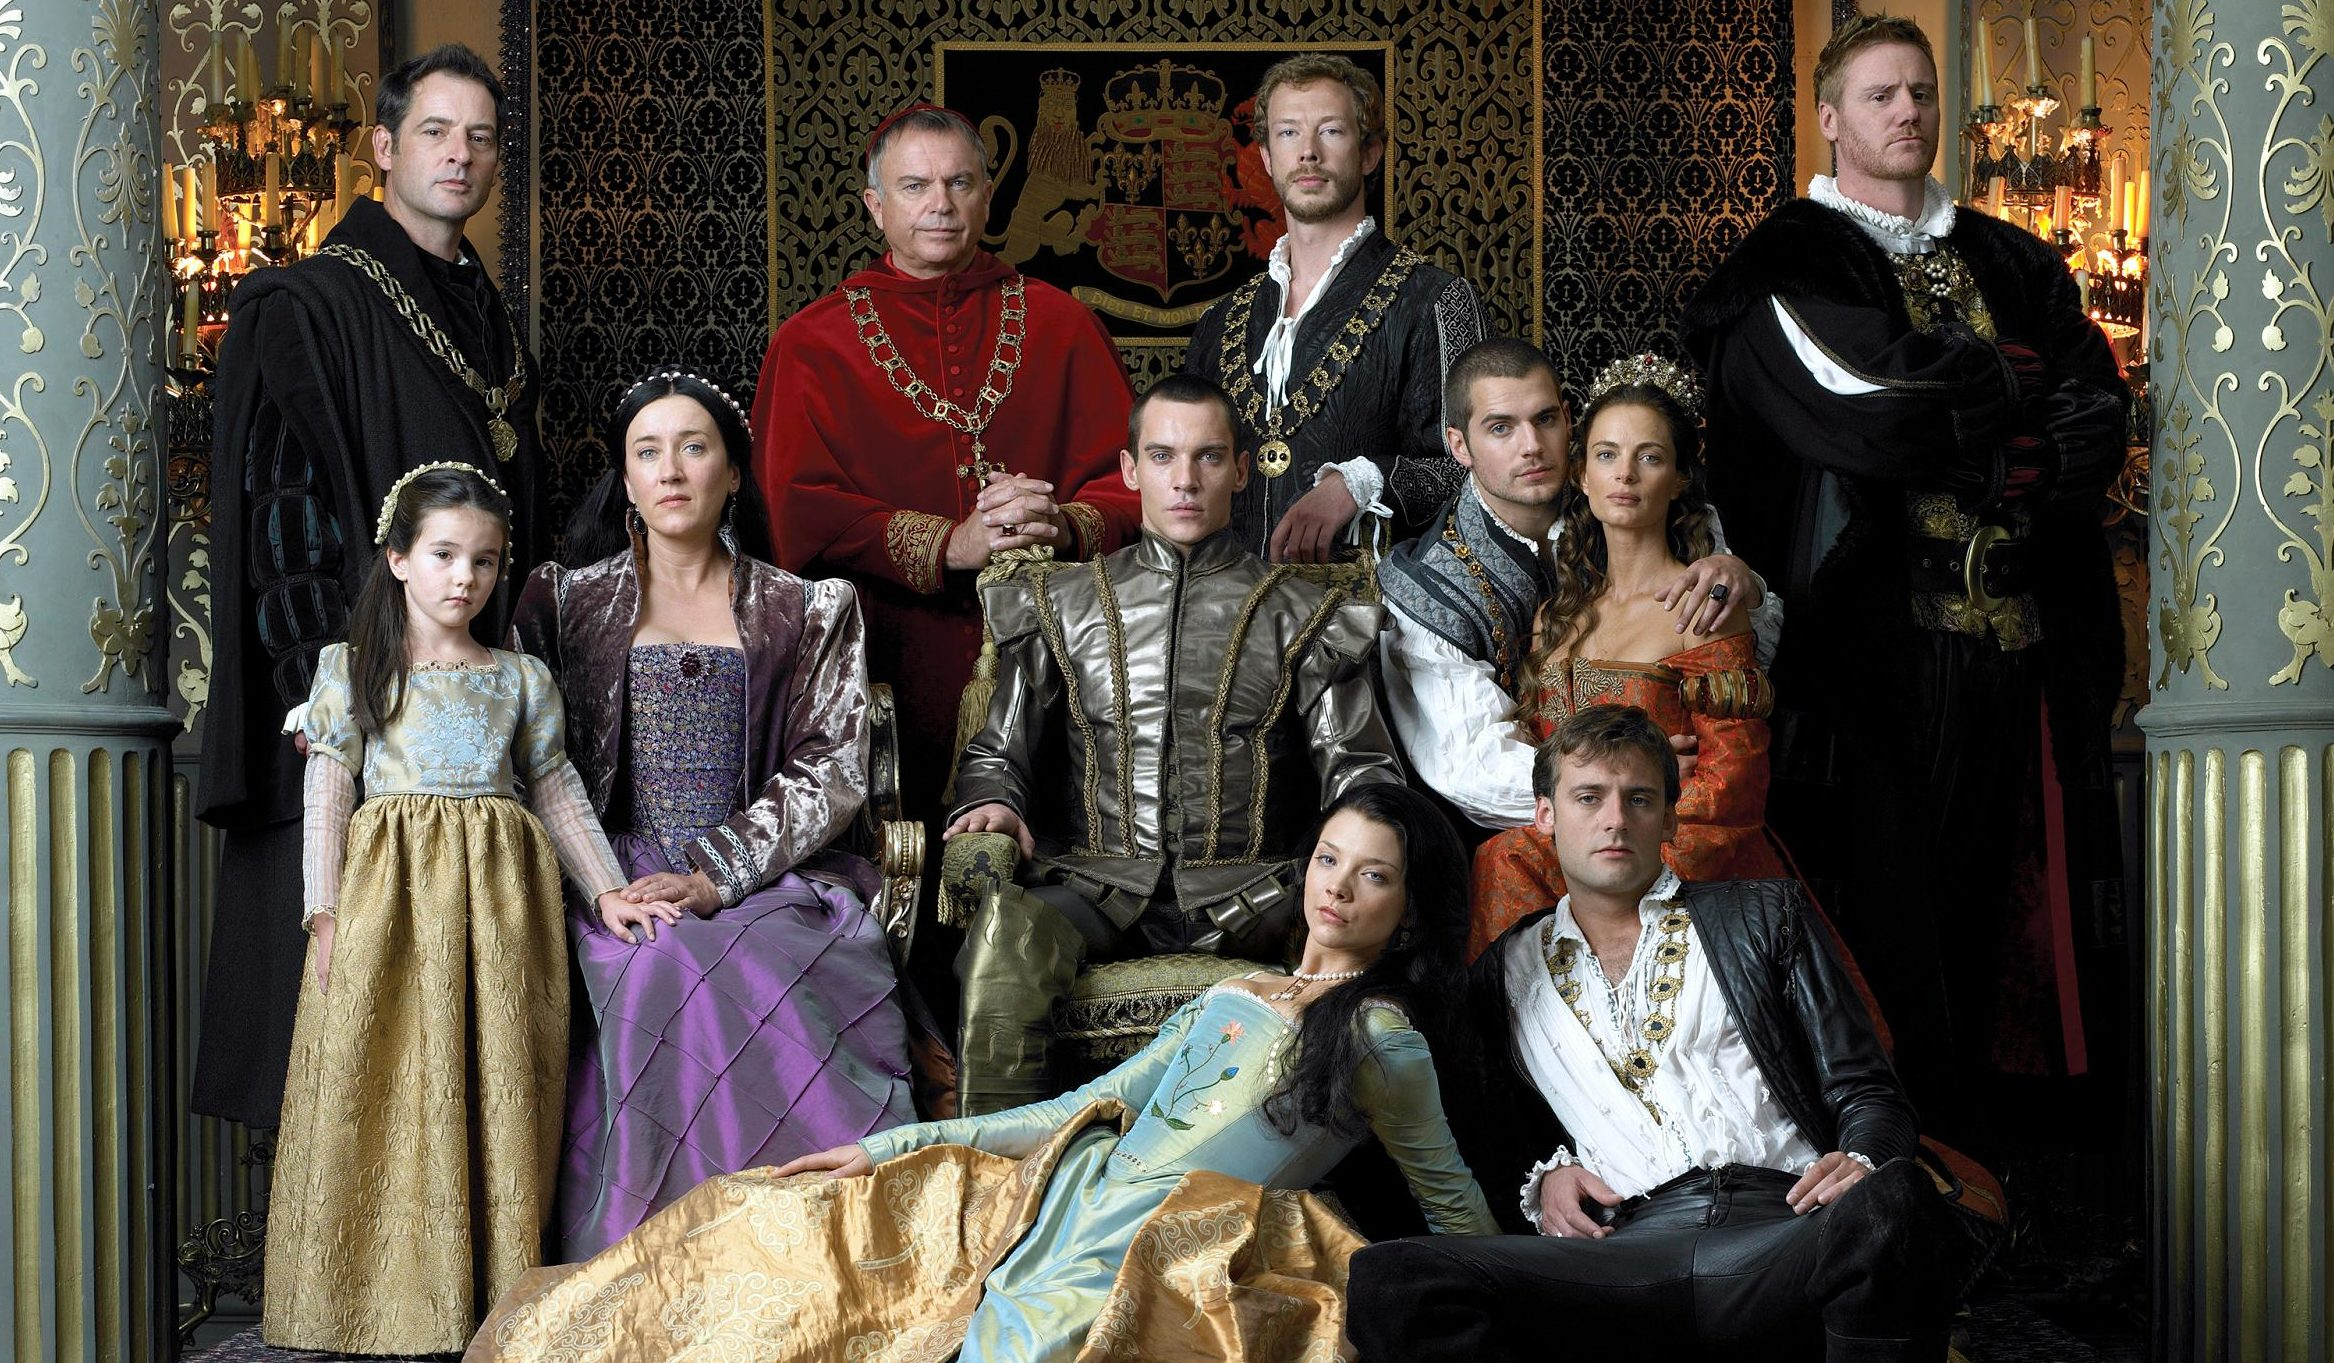 an image of the cast of the show, all dressed in period costumes